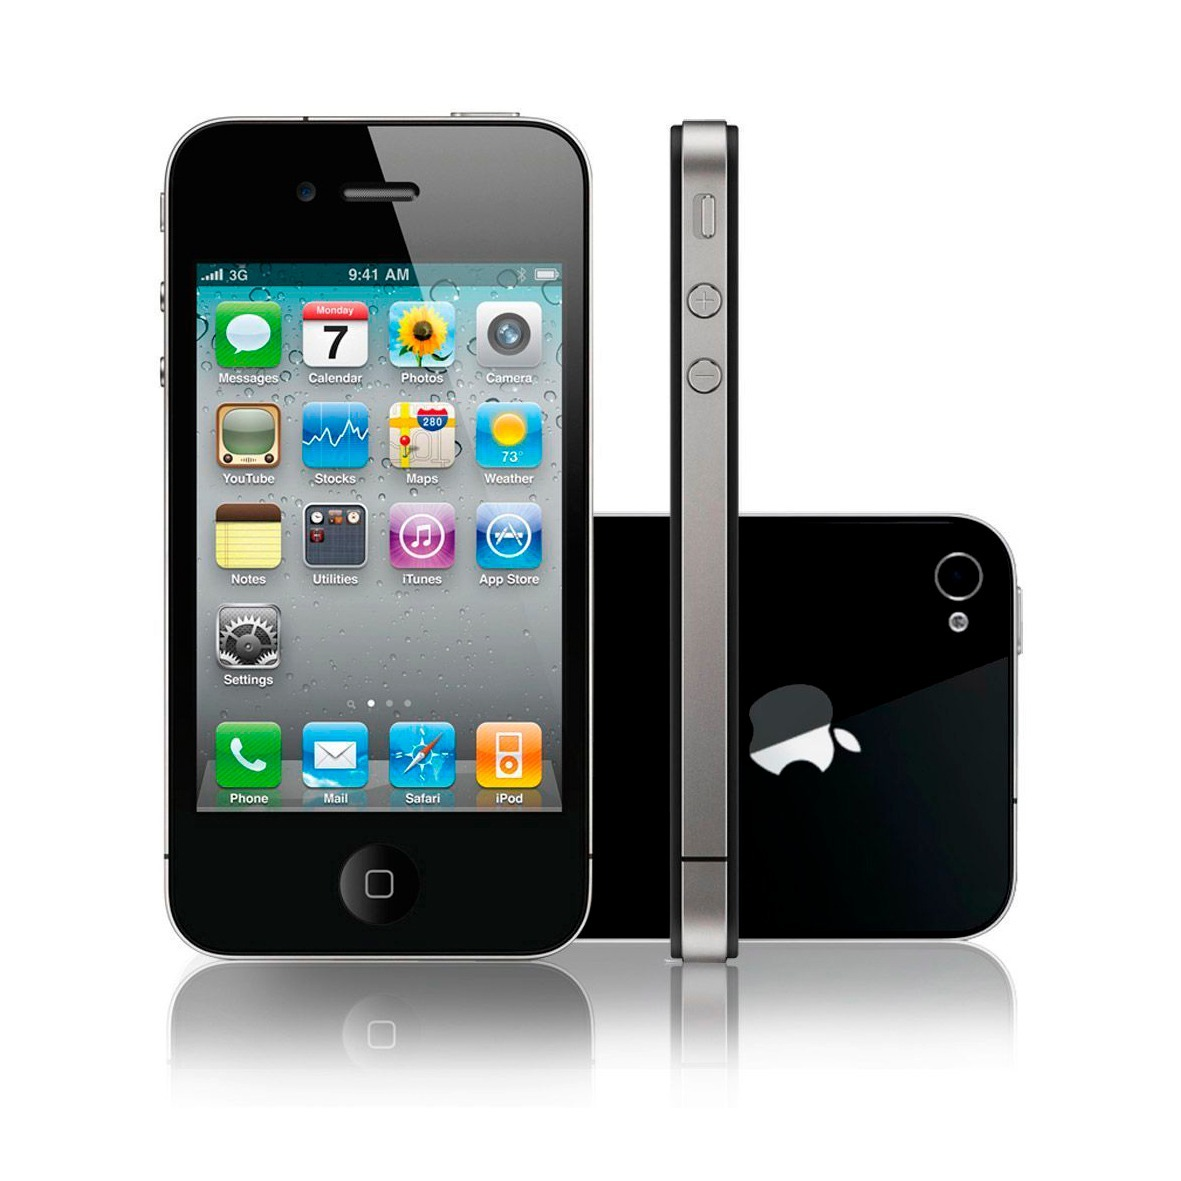 Iphone 4 Comprar Libre Celular Iphone 4s 32gb Negro Desbloqueado 1 999 00 En